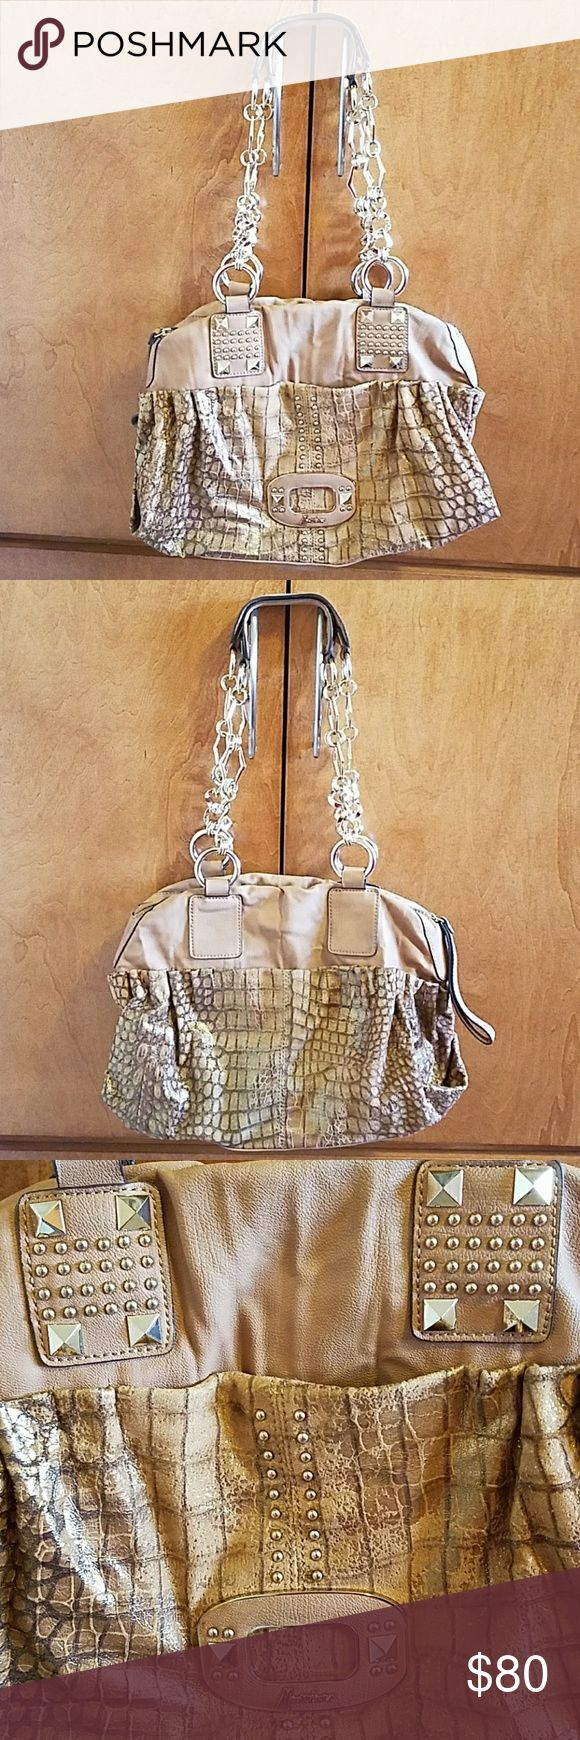 Guess by Marciano Bag Beautiful bag with goldtone hardware detail. Tan bag with distressed snakeskin look mixed with golden tones. Exterior magnetic closure pockets in the front and back. Clean interior has one zip pocket and one slip pocket. Strap hardware shows subtle signs of wear as shown in 5th photo. Also, some wear by the zipper as shown in 6th photo. Used only a few times. Dustbag included! Guess by Marciano Bags